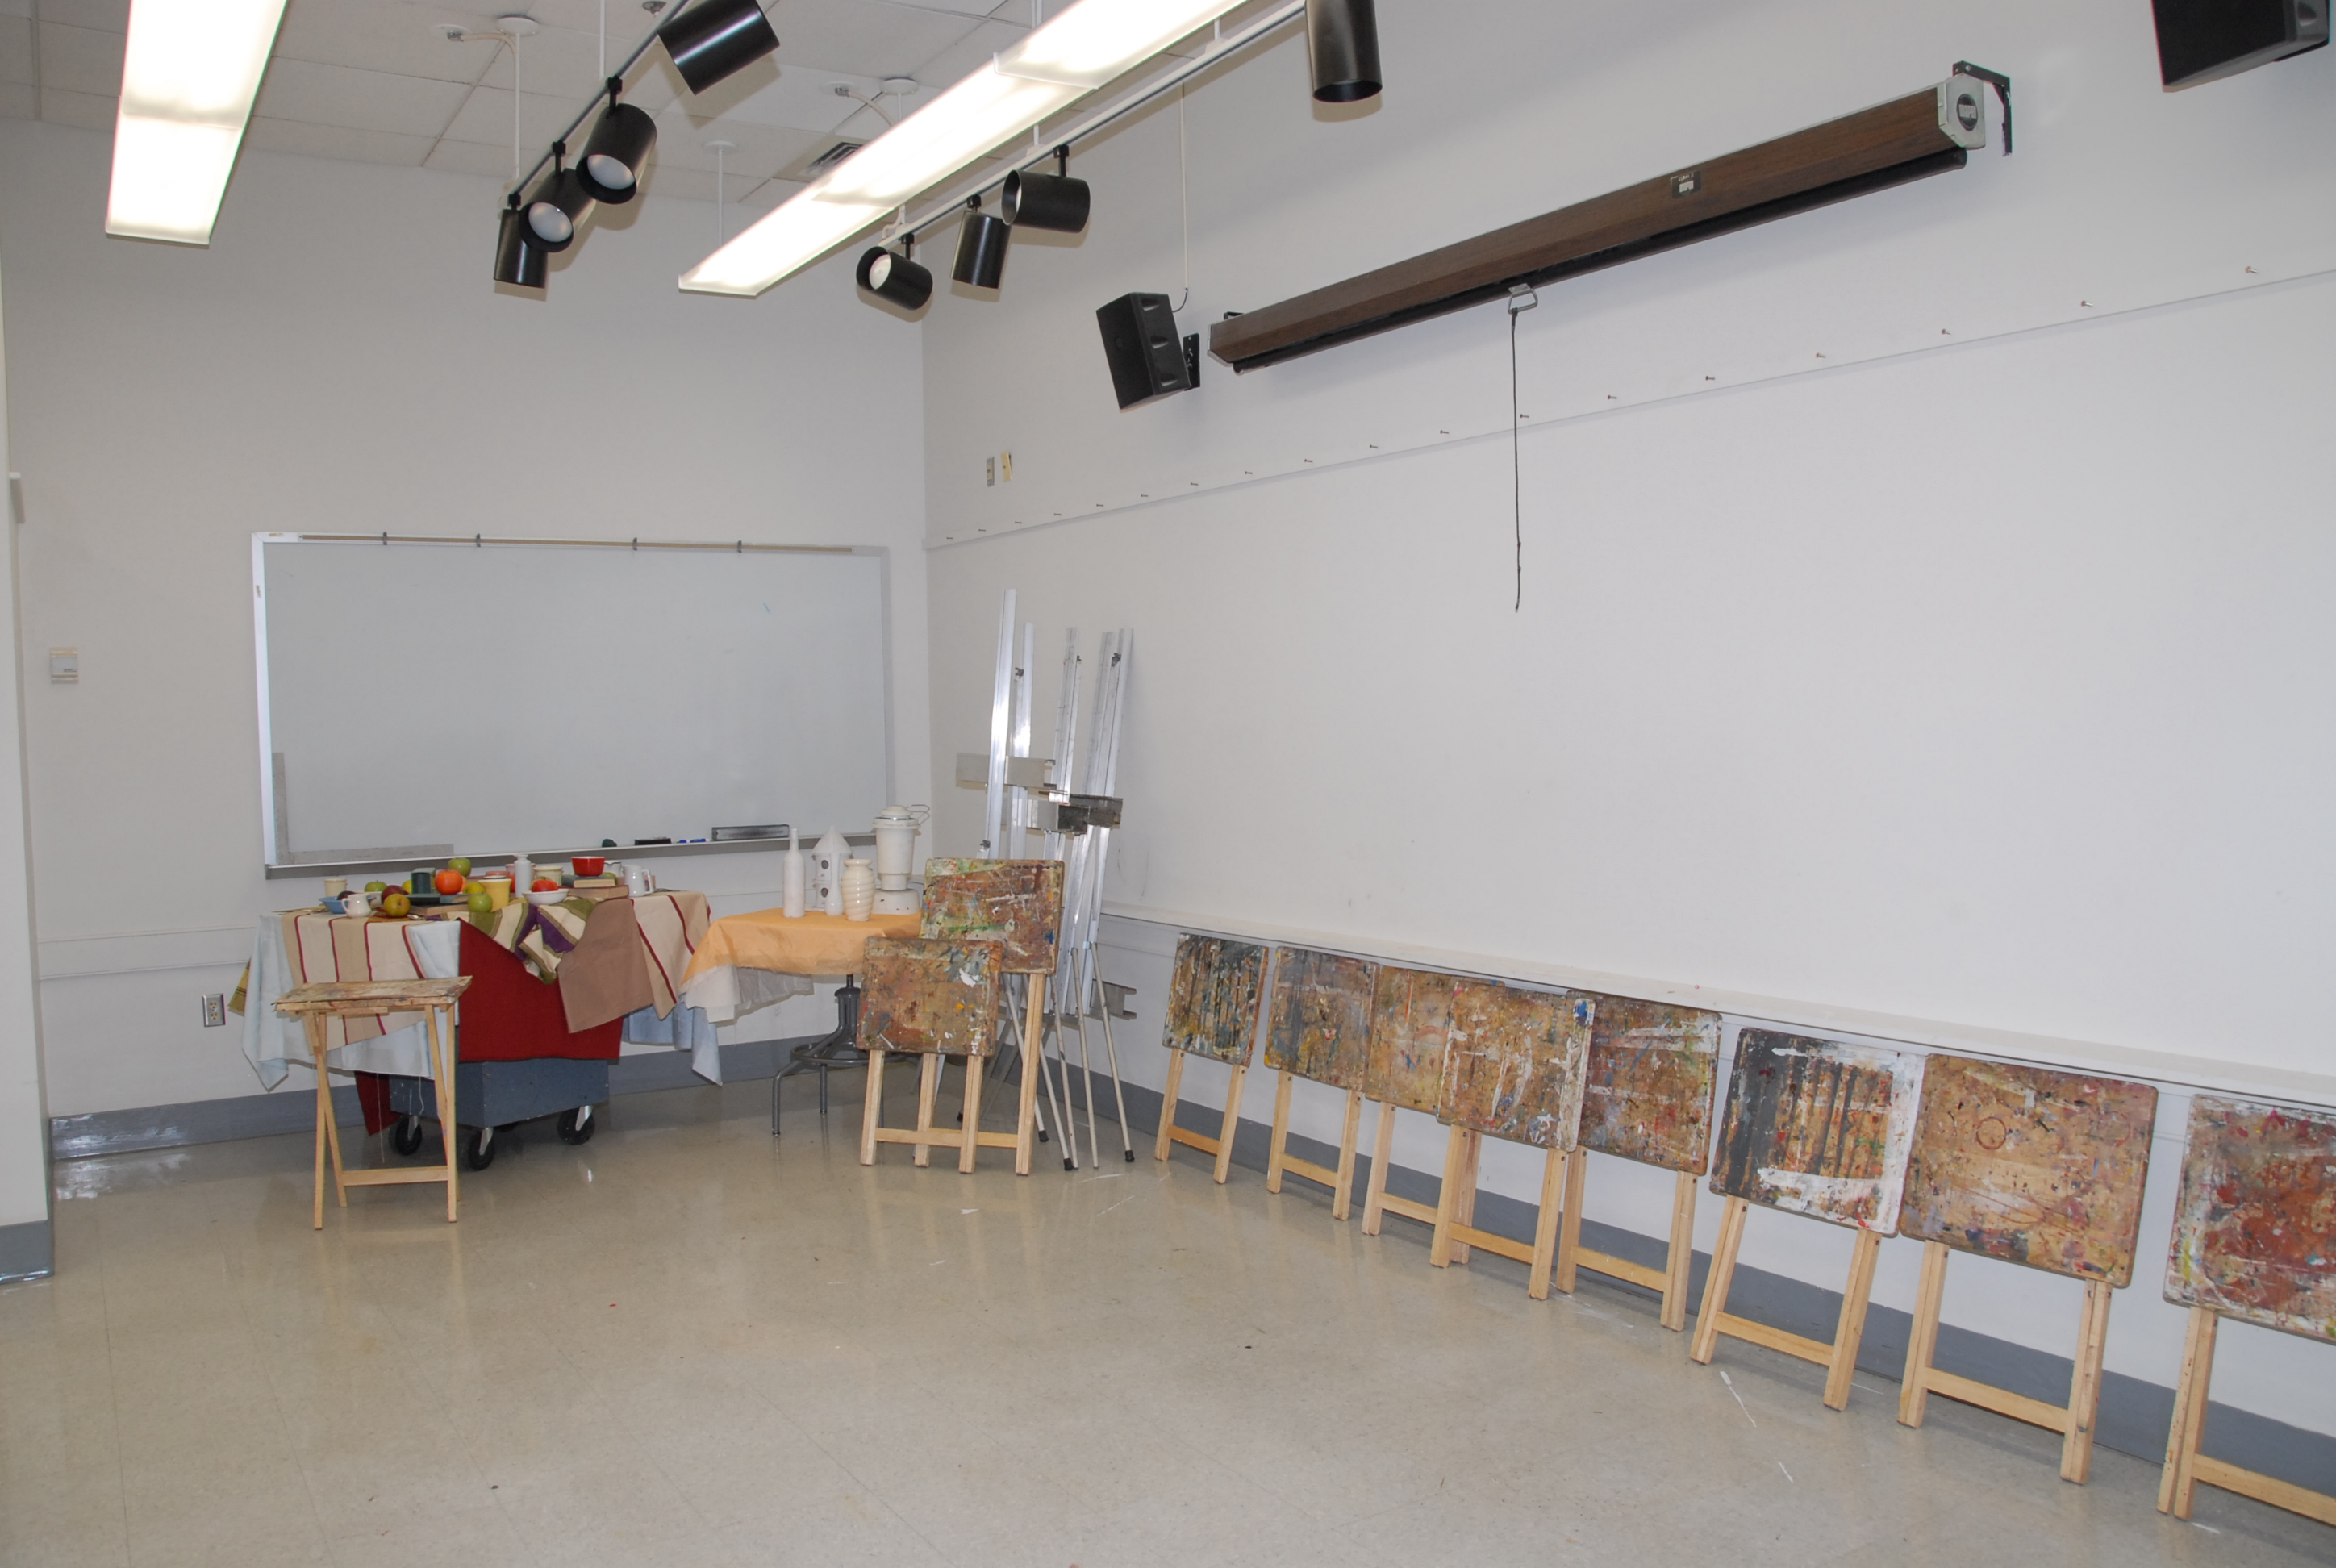 Drawing Classroom, 2009